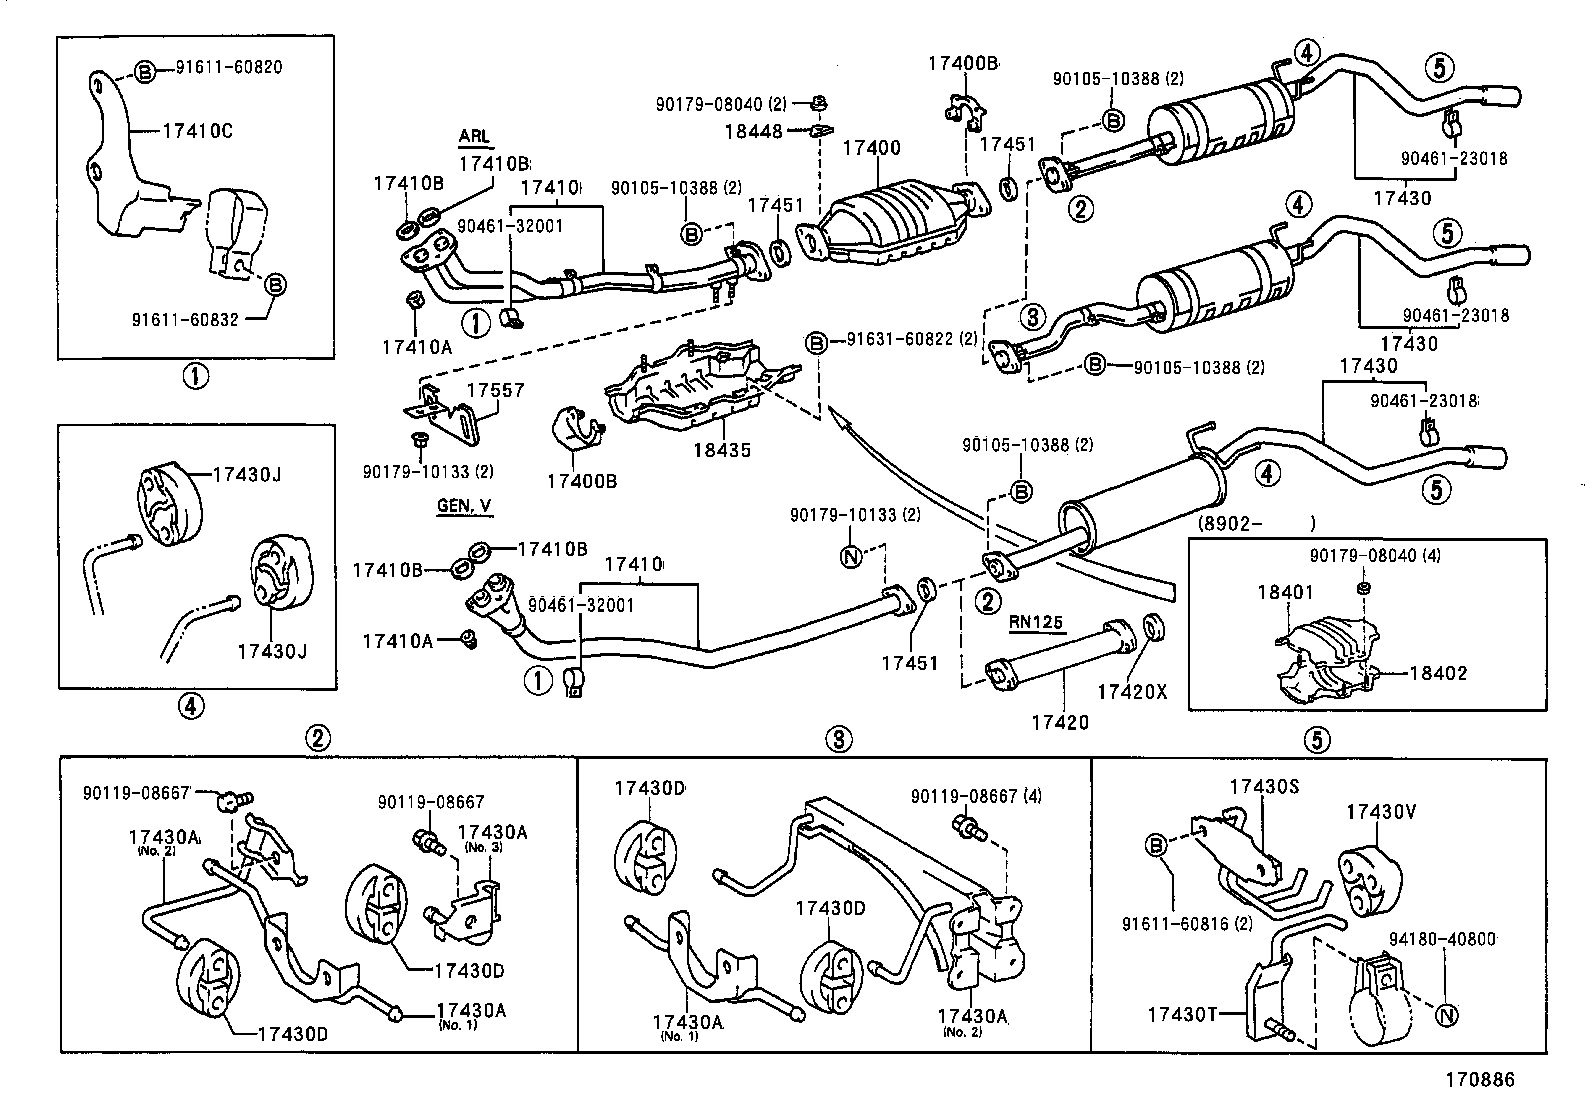 2004 Toyota 4runner Exhaust Parts Diagram. Toyota. Auto